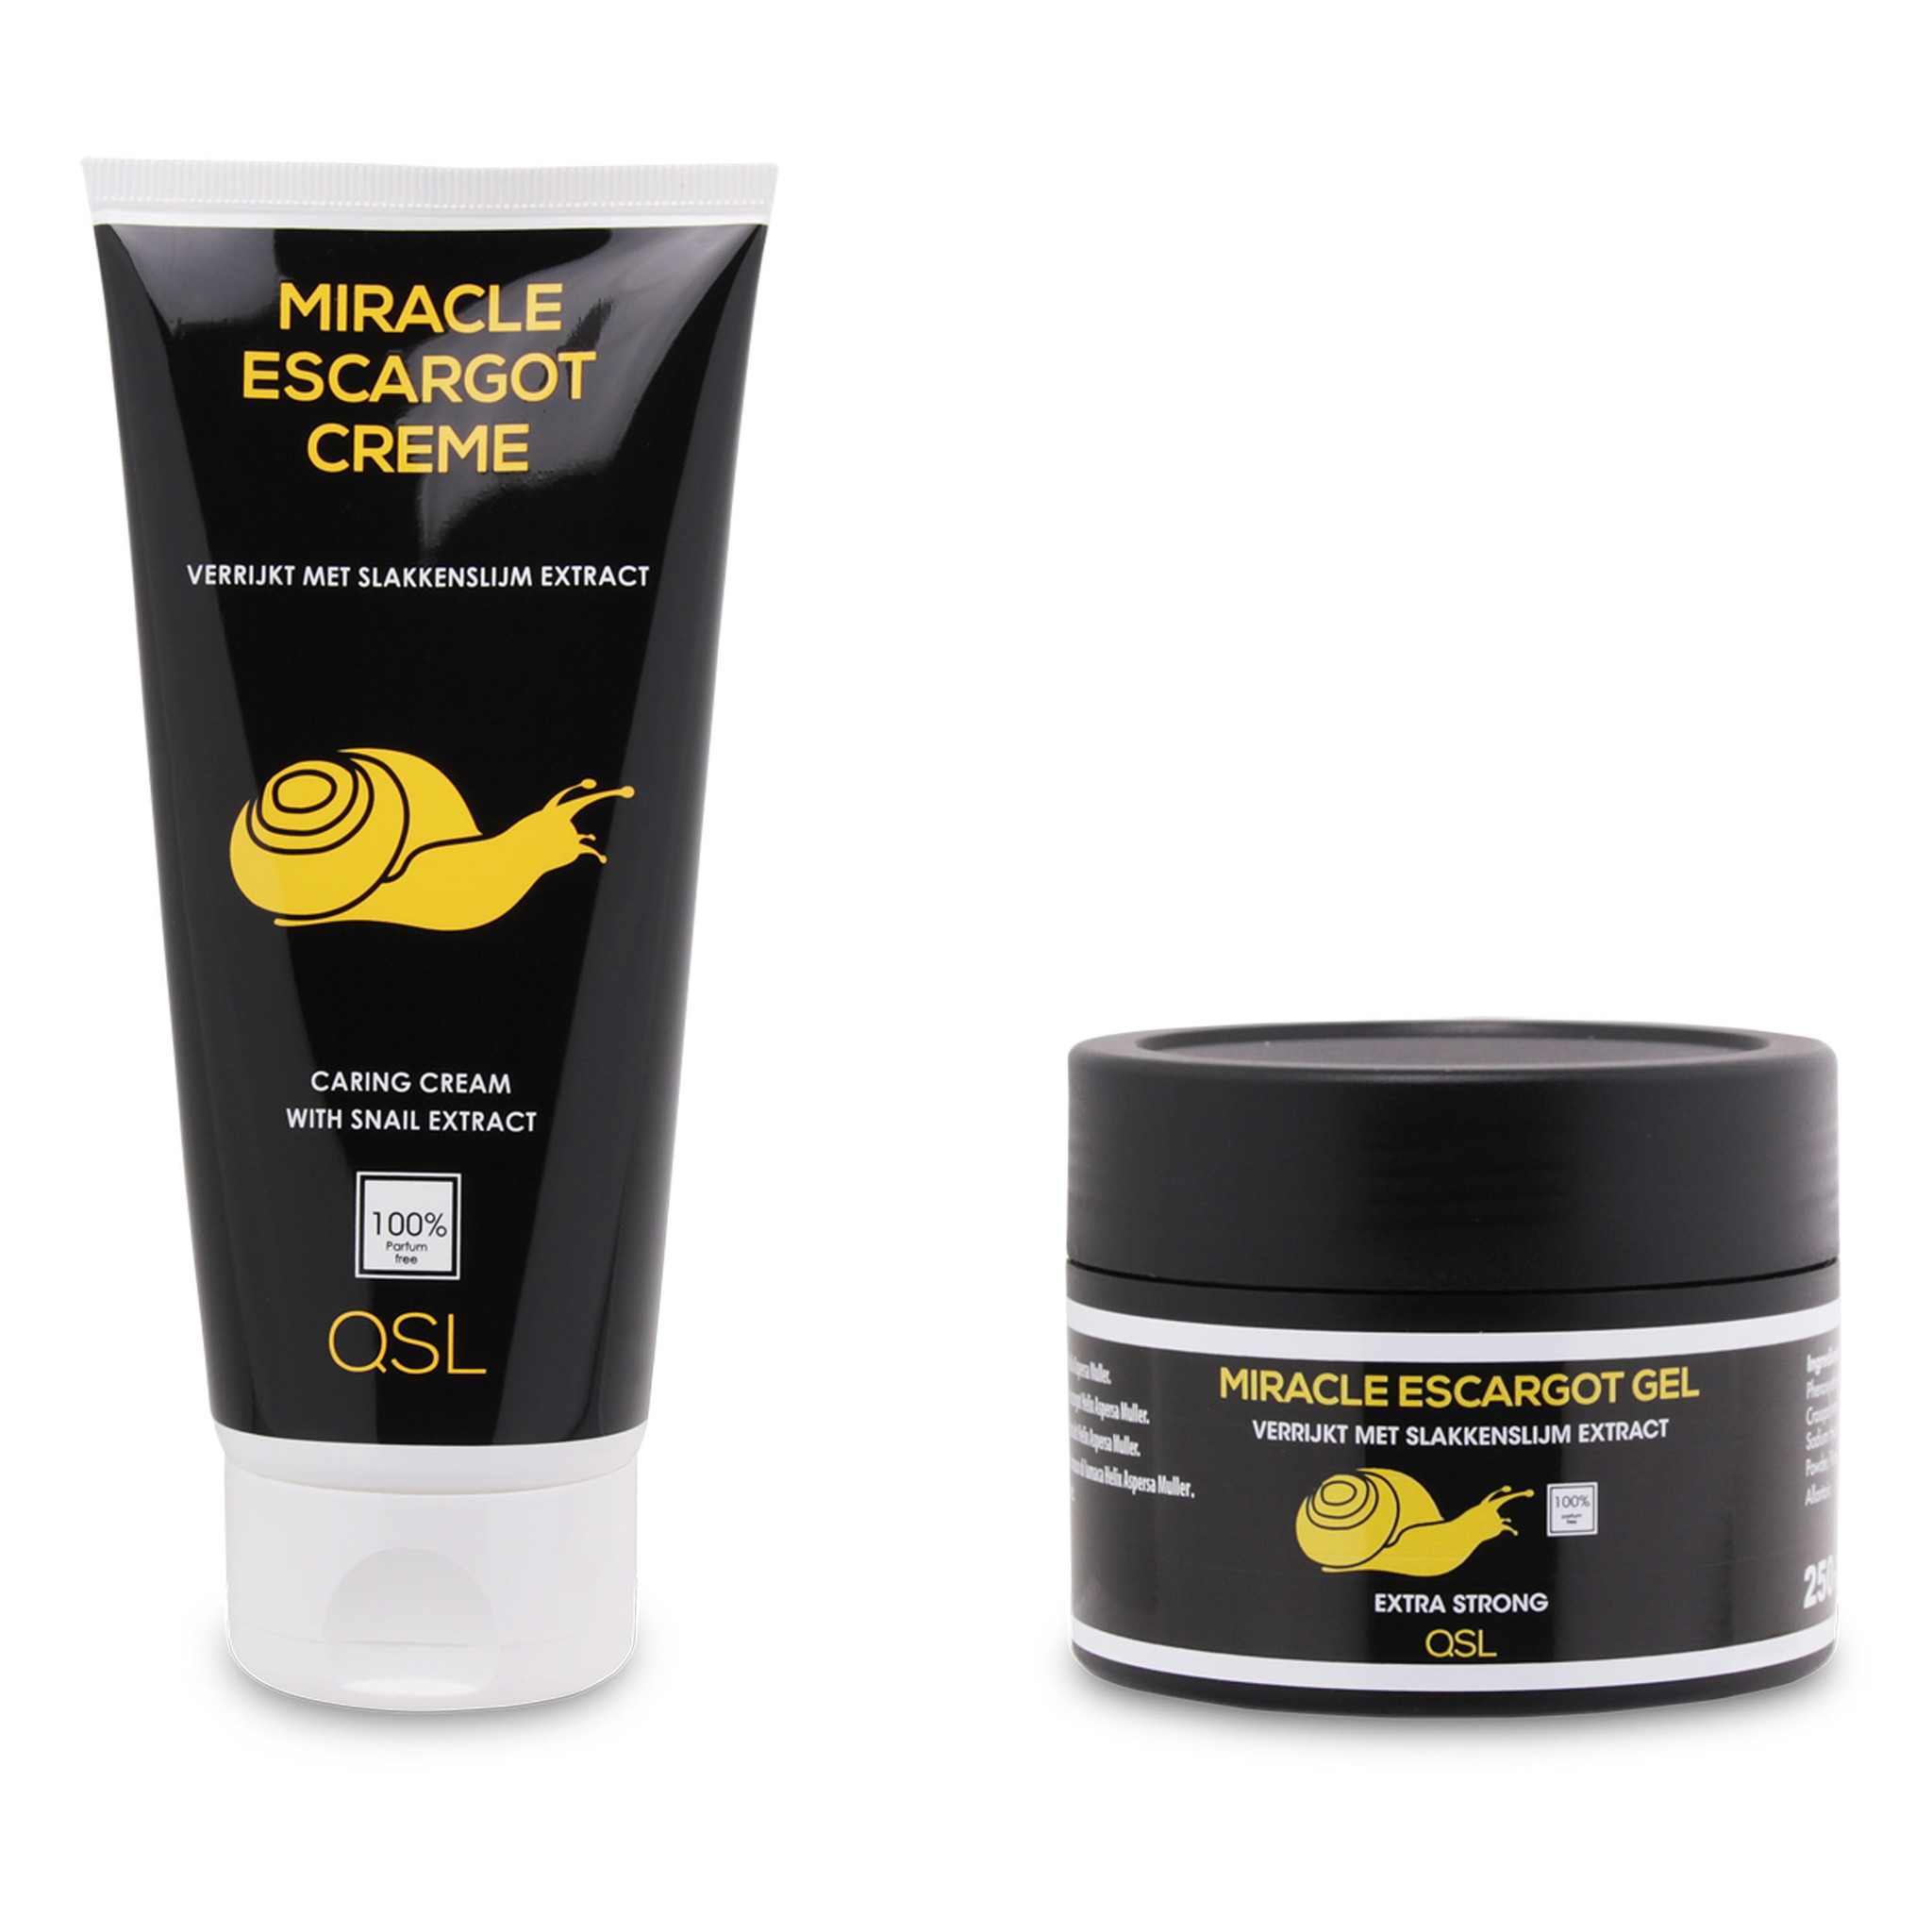 Miracle Escargot Offre combinée   Miracle Escargot Gel 250ml & Miracle Escargot Crème 200ml